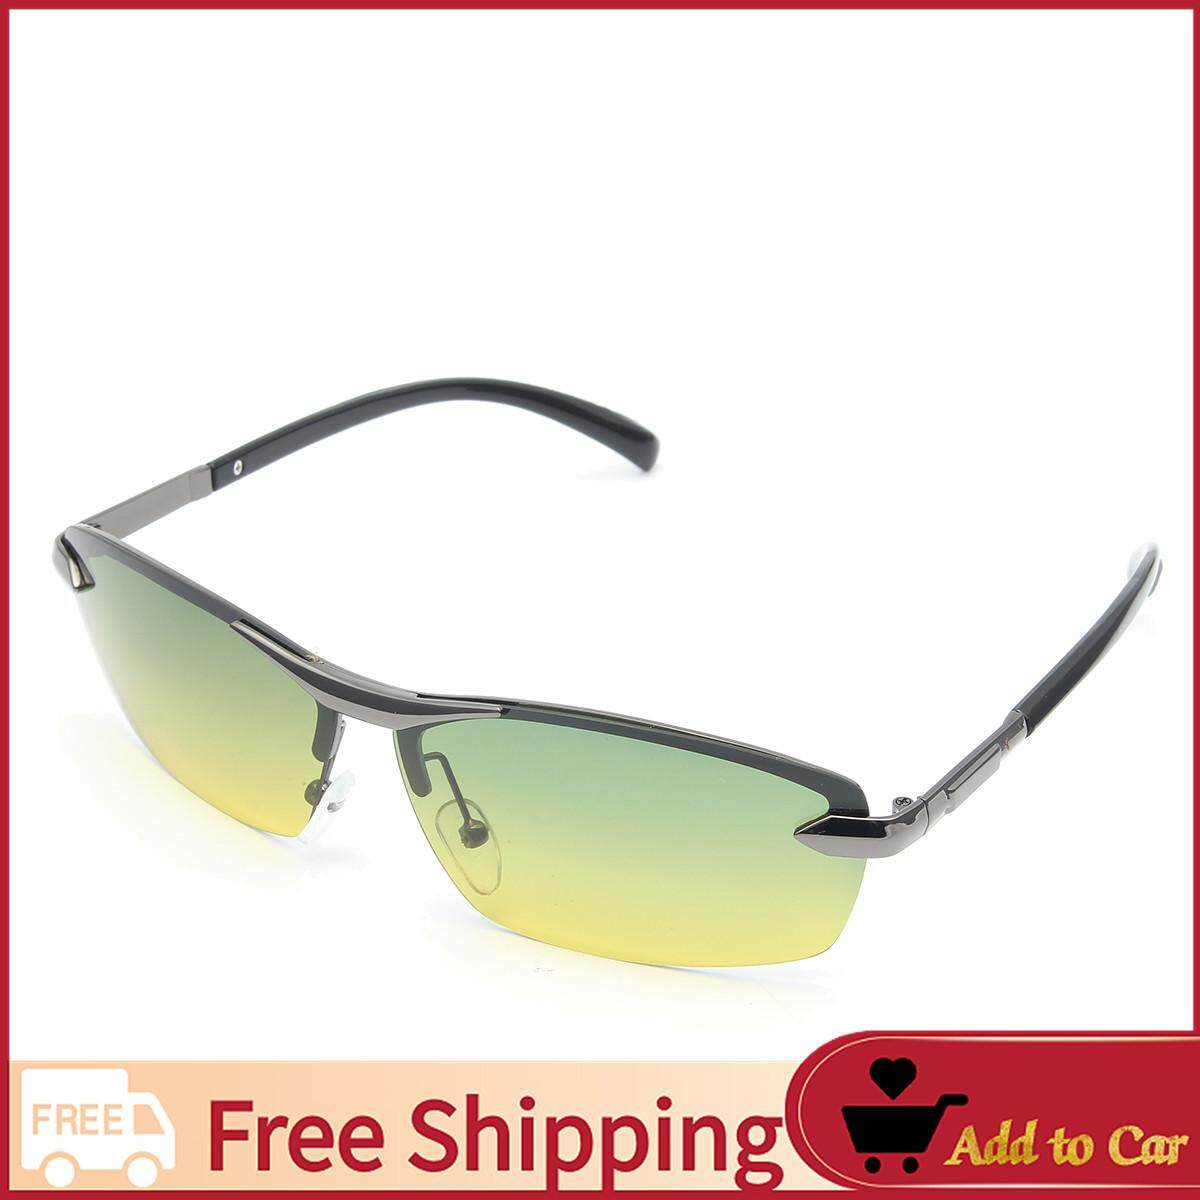 6aa92f145247 【Free Shipping】Day Night Vision Men's Polarized Sunglasses Driving Pilot  Mirror Sun Glasses